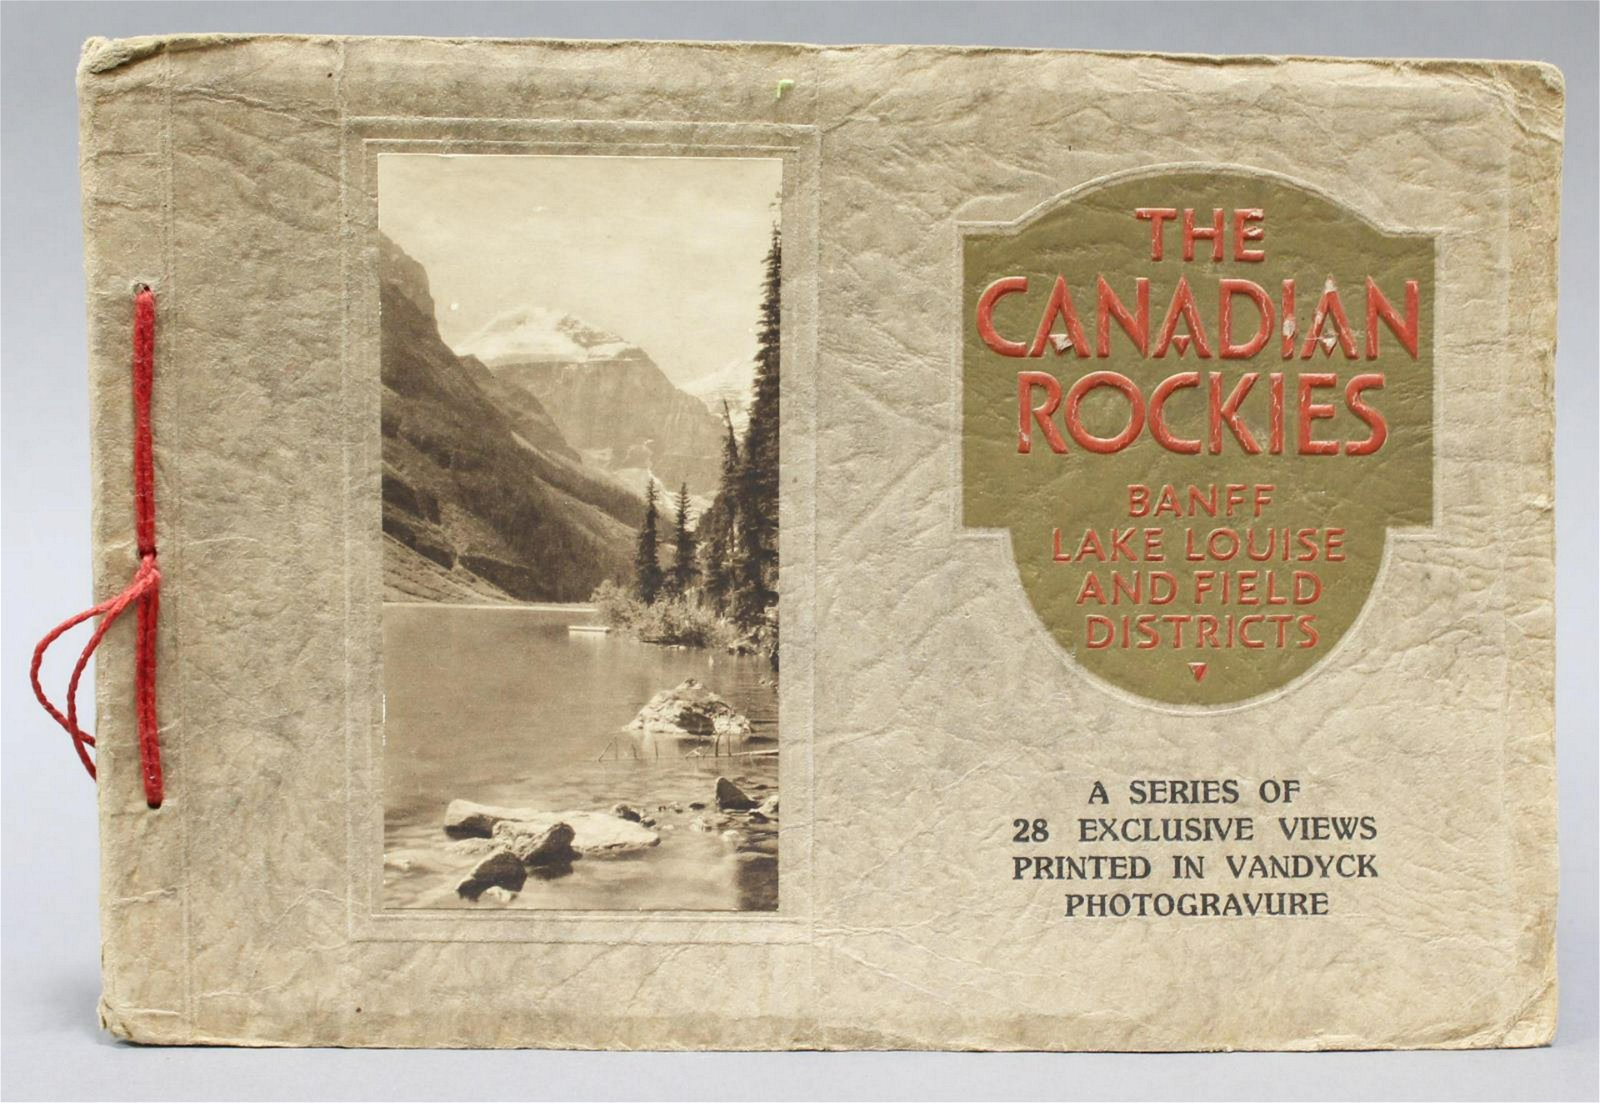 THE CANADIAN ROCKIES PHOTOGRAVURE BOOKLET